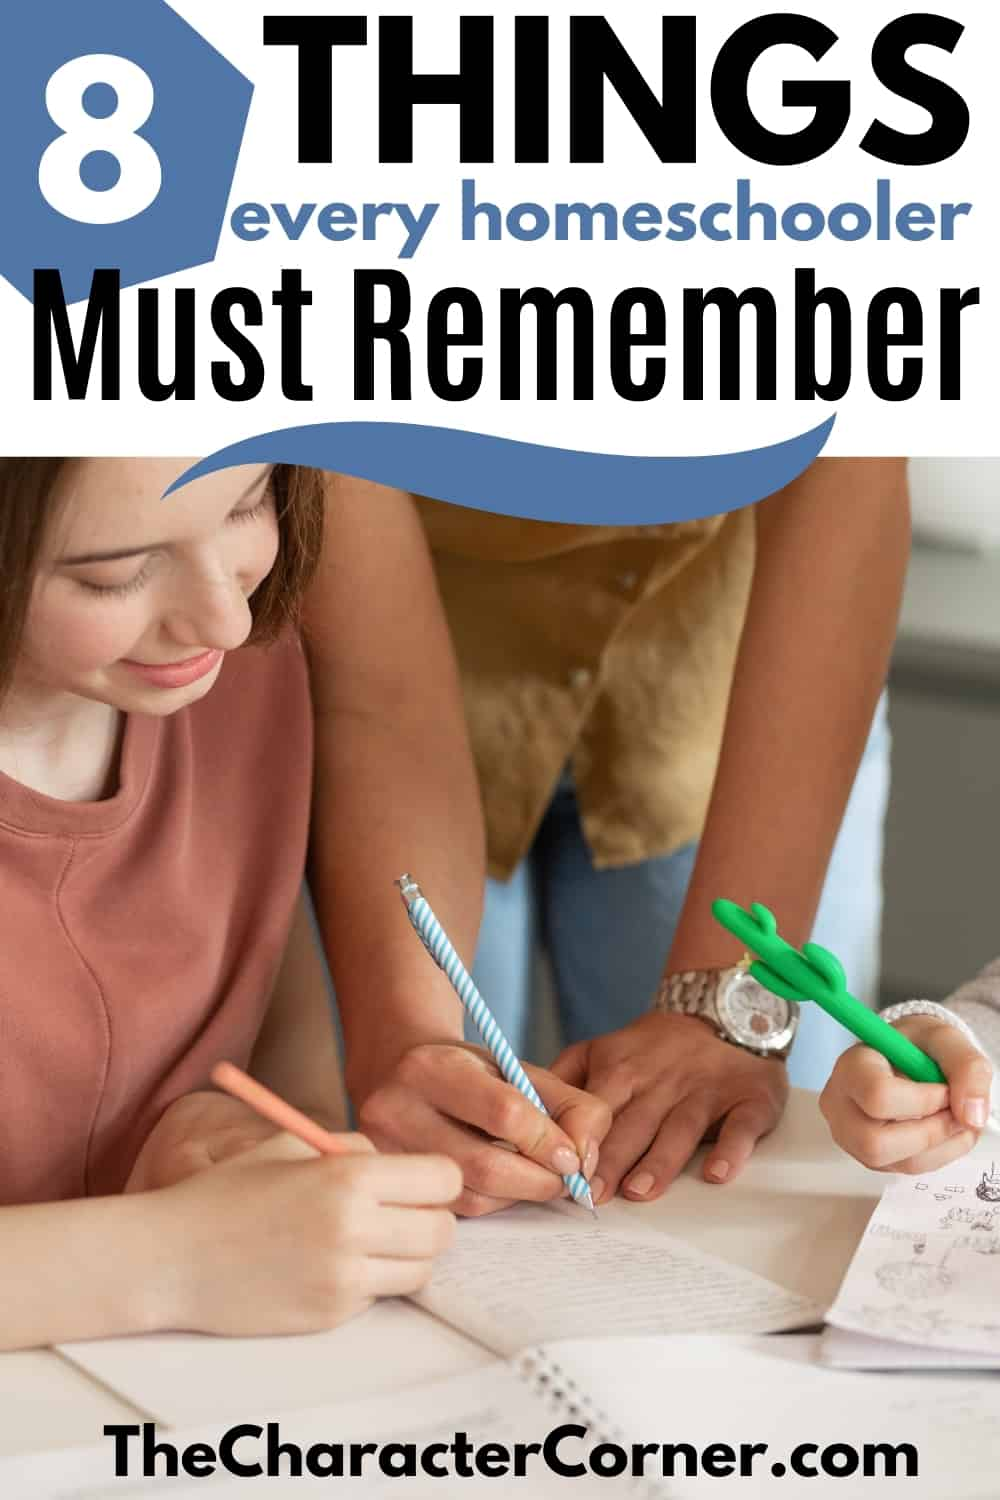 homeschool mom and daughters working together text on image reads: 8 Things Every Homeschool Mom Must Remember